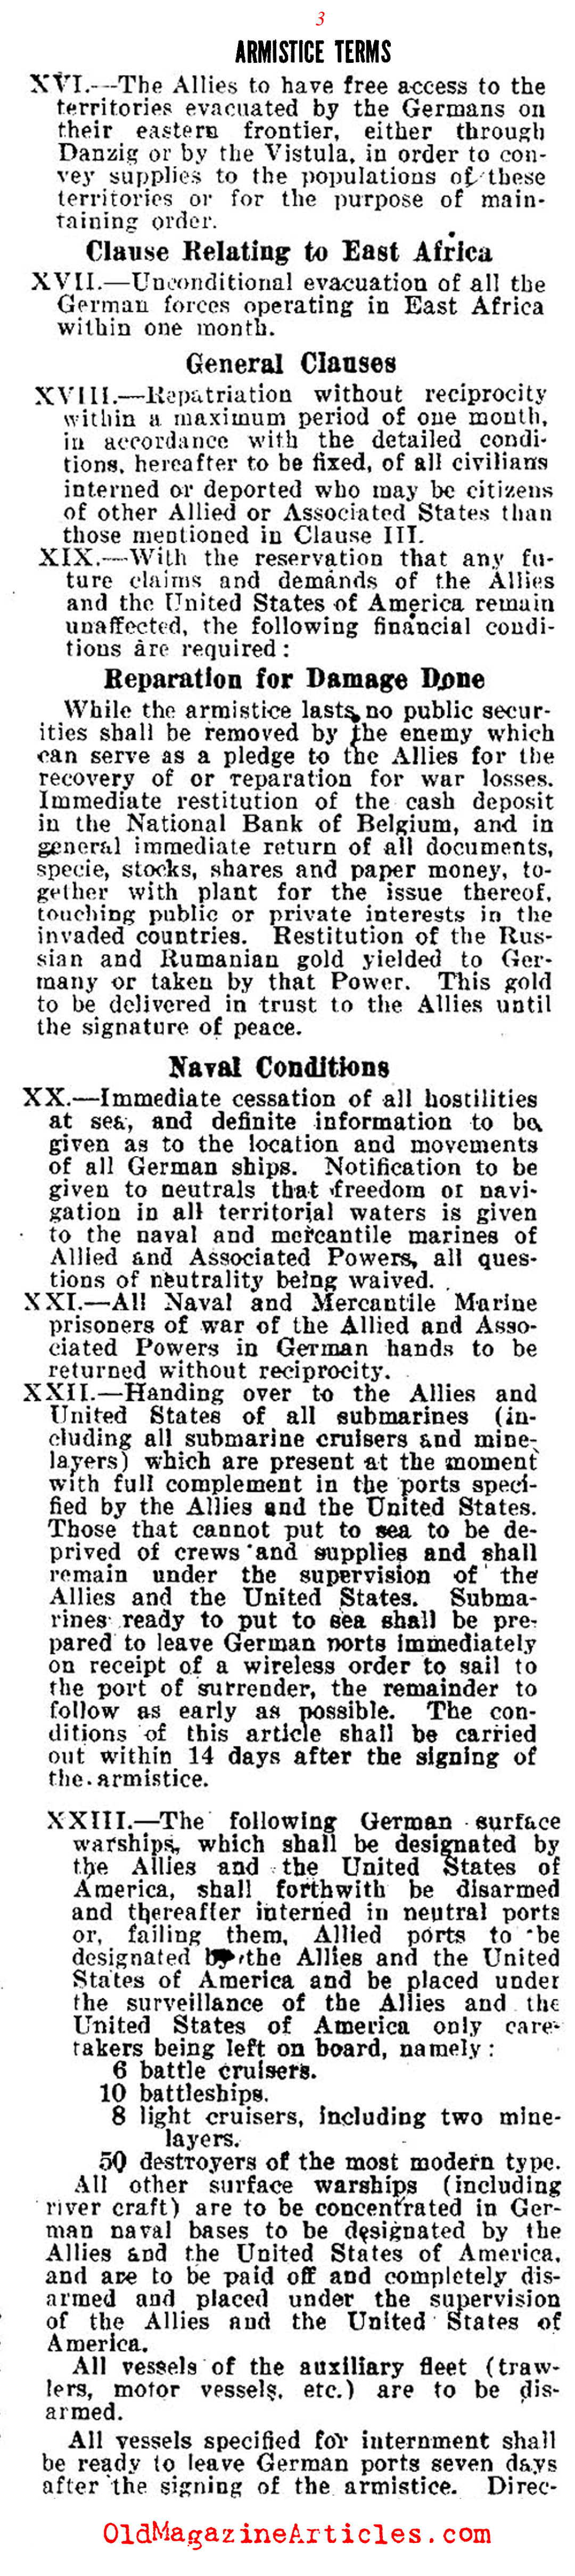 The Demands of the 1918 Armistice (The Stars and Stripes, 1918)